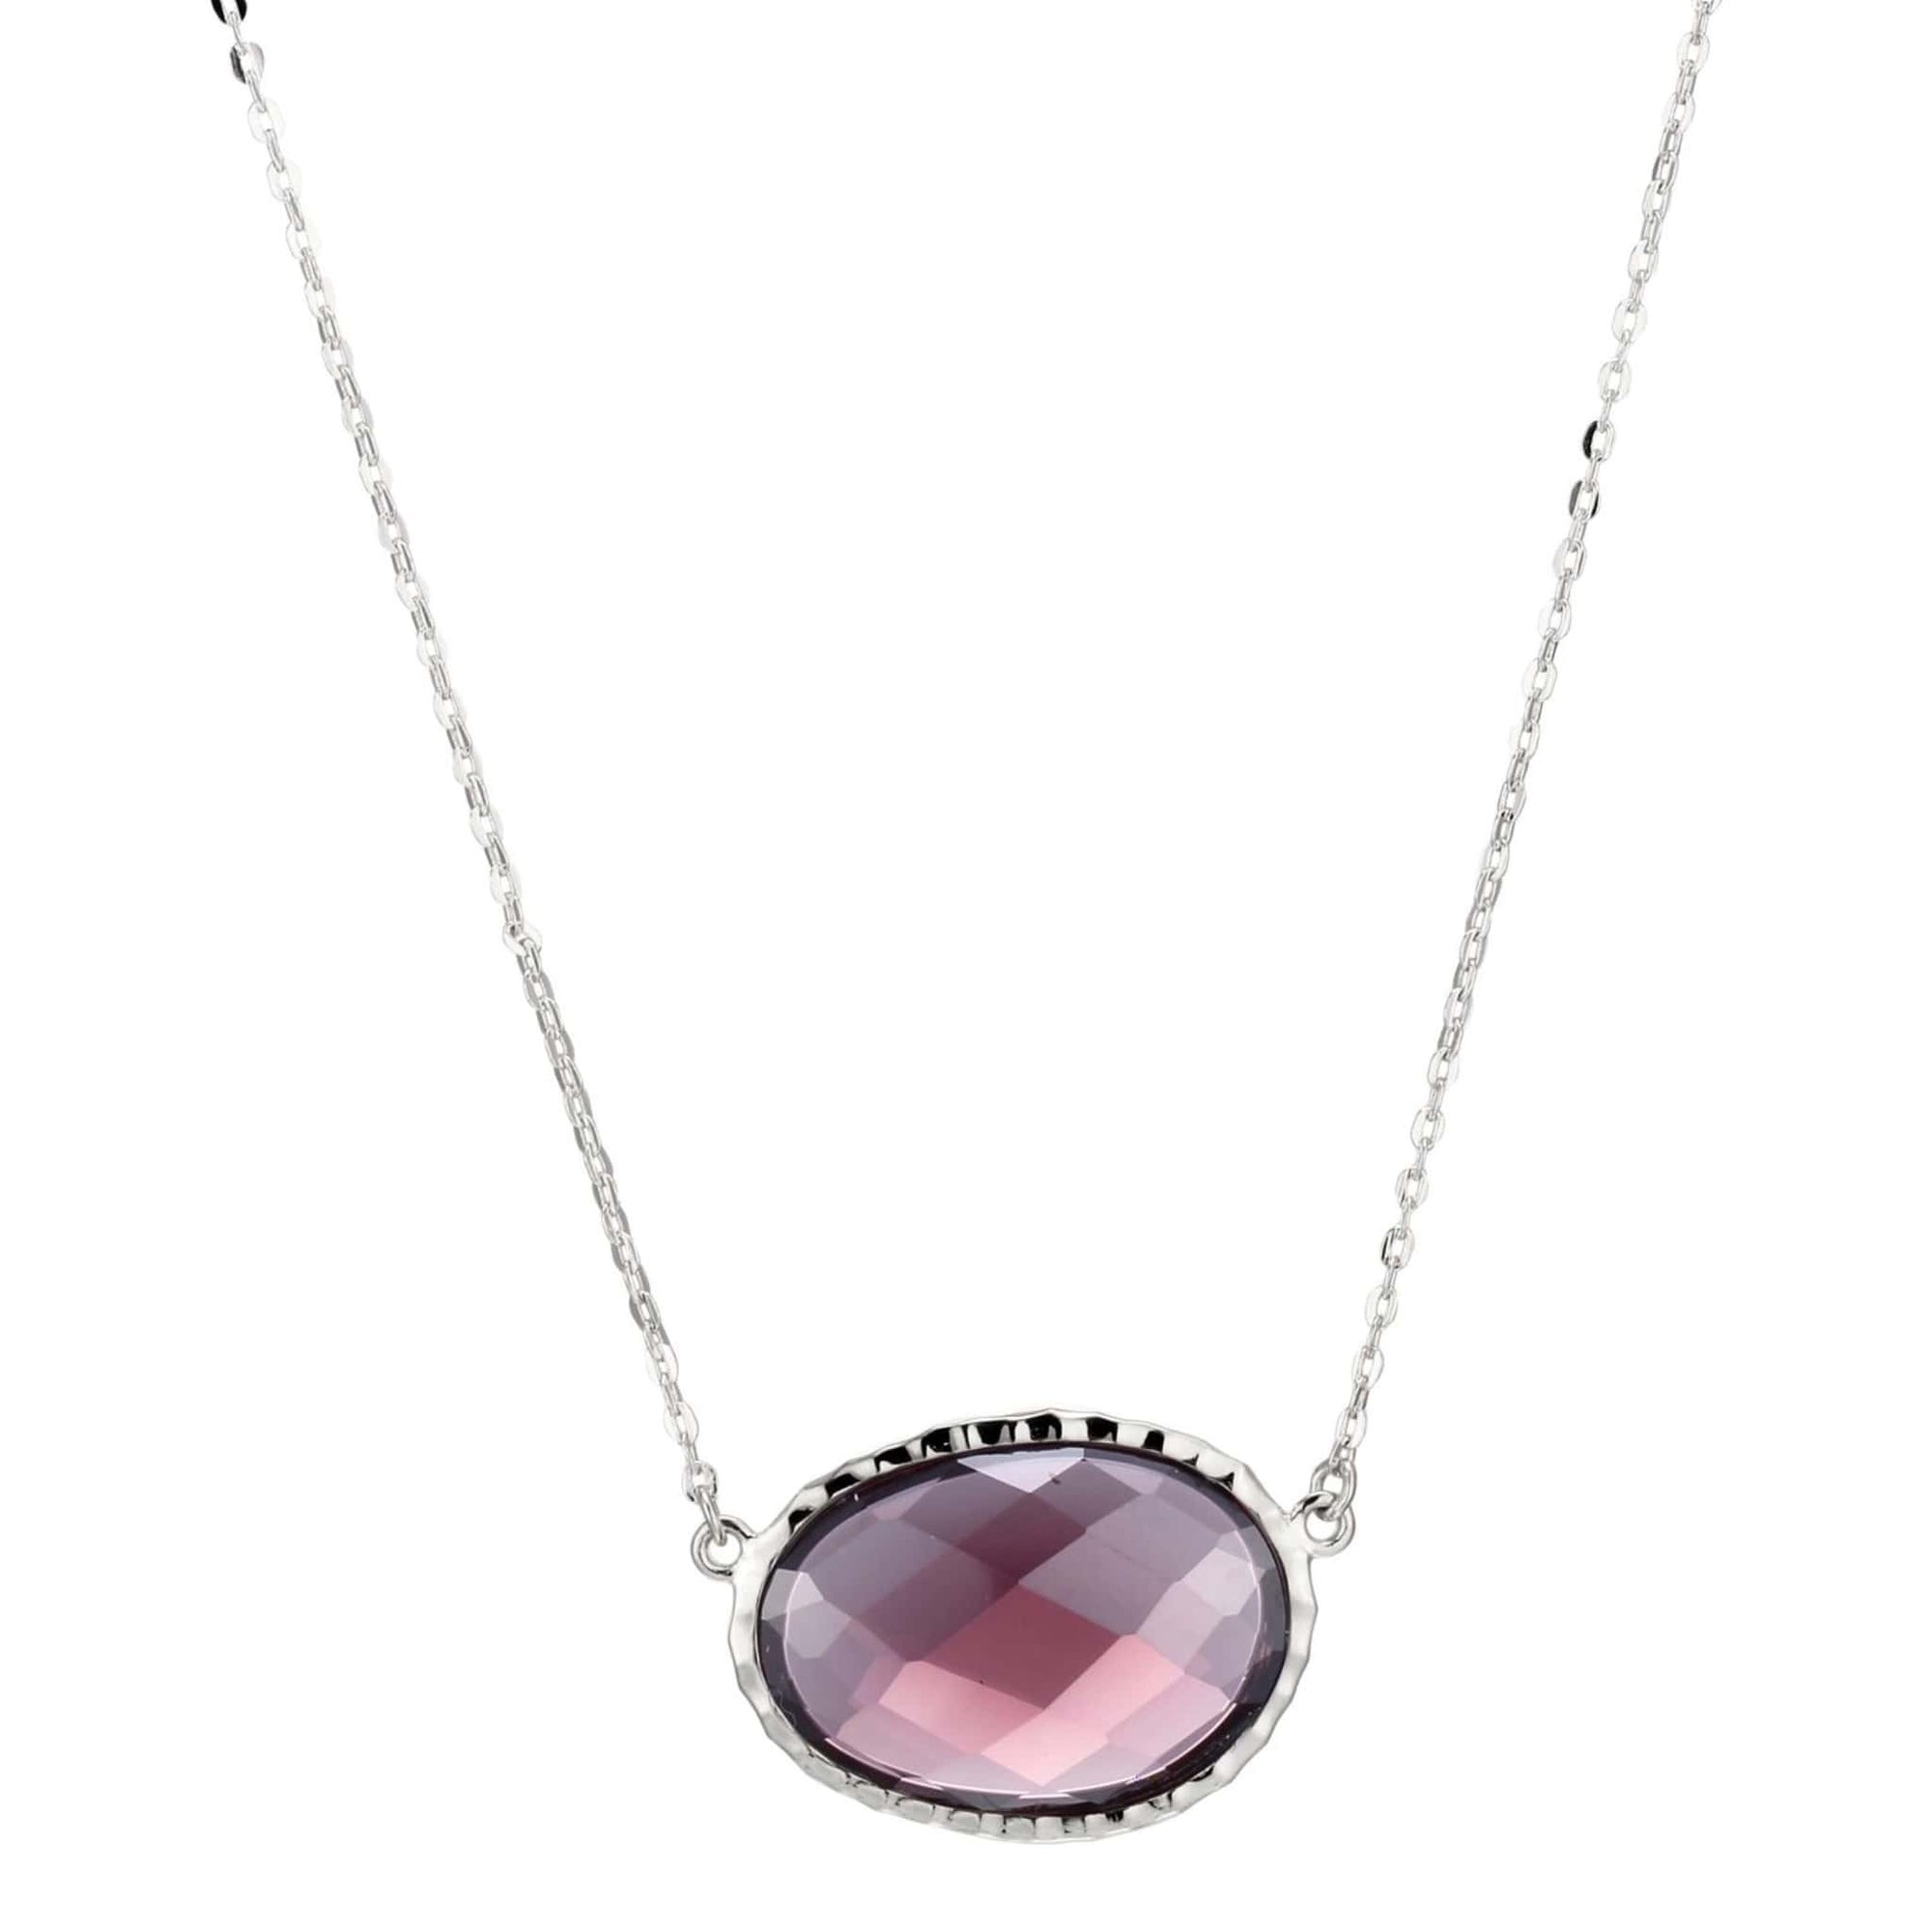 ELLE Fire & Ice Silver Necklace at Arman's Jewellers